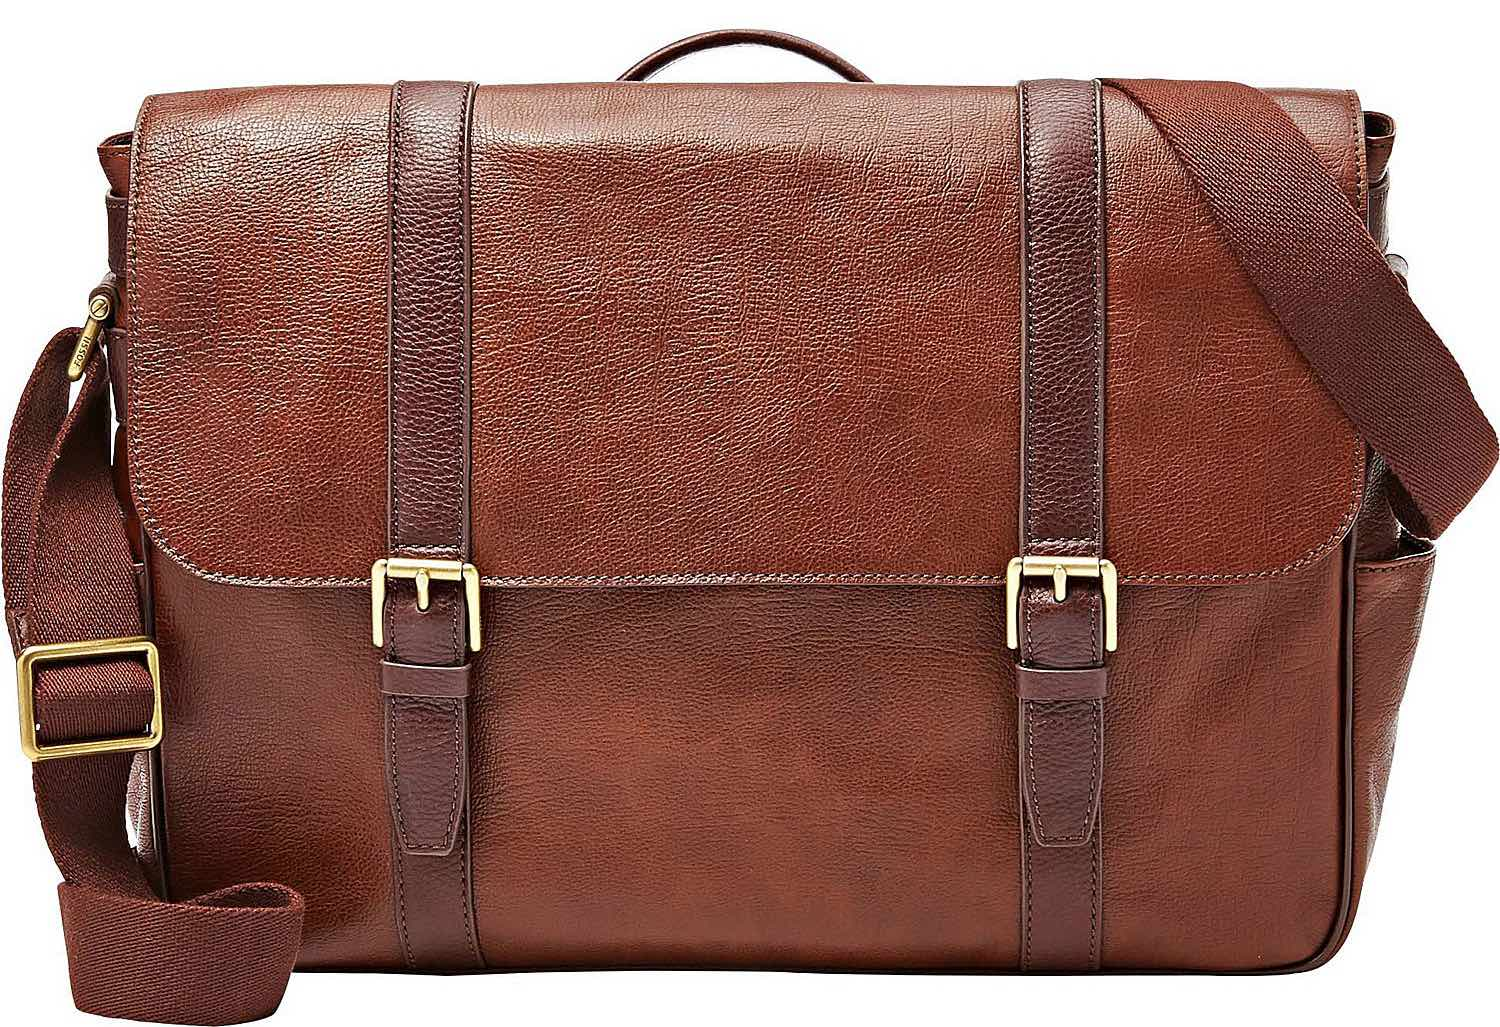 Fossil's Estate East-West saffiano leather messenger bag. ($298)